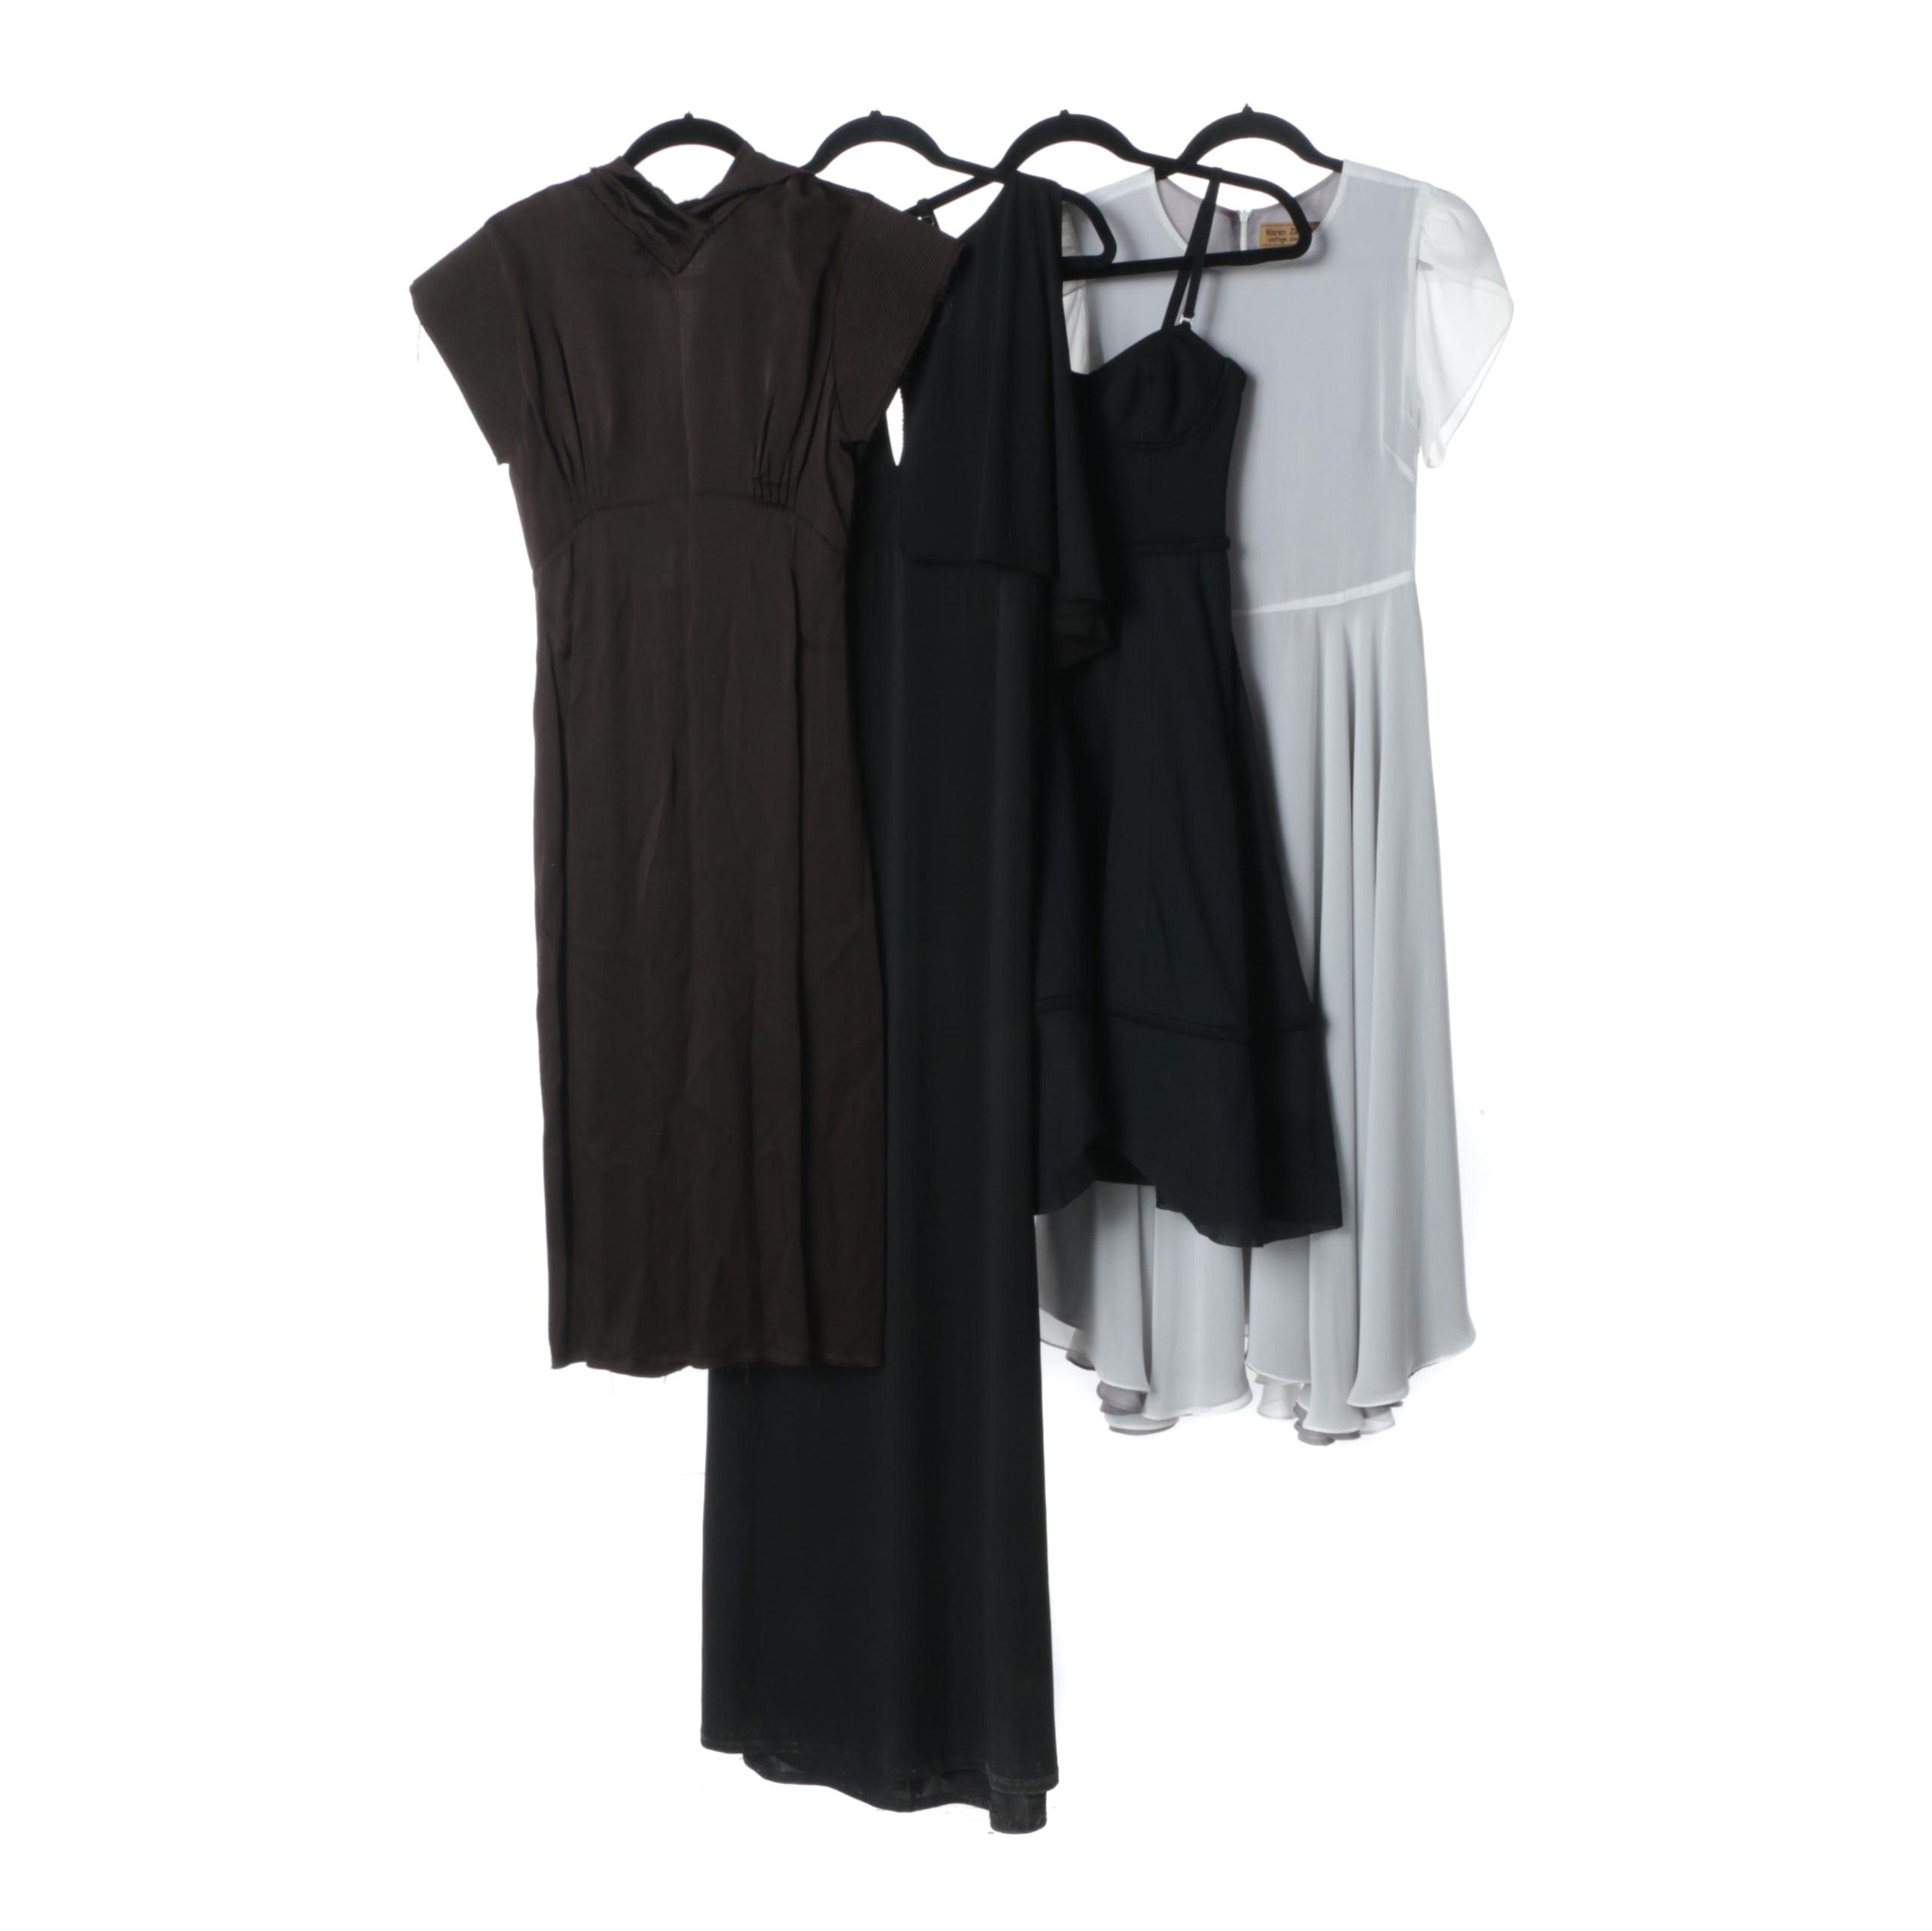 Midi and Maxi Dresses Including 6267, Willow and ABS Collection